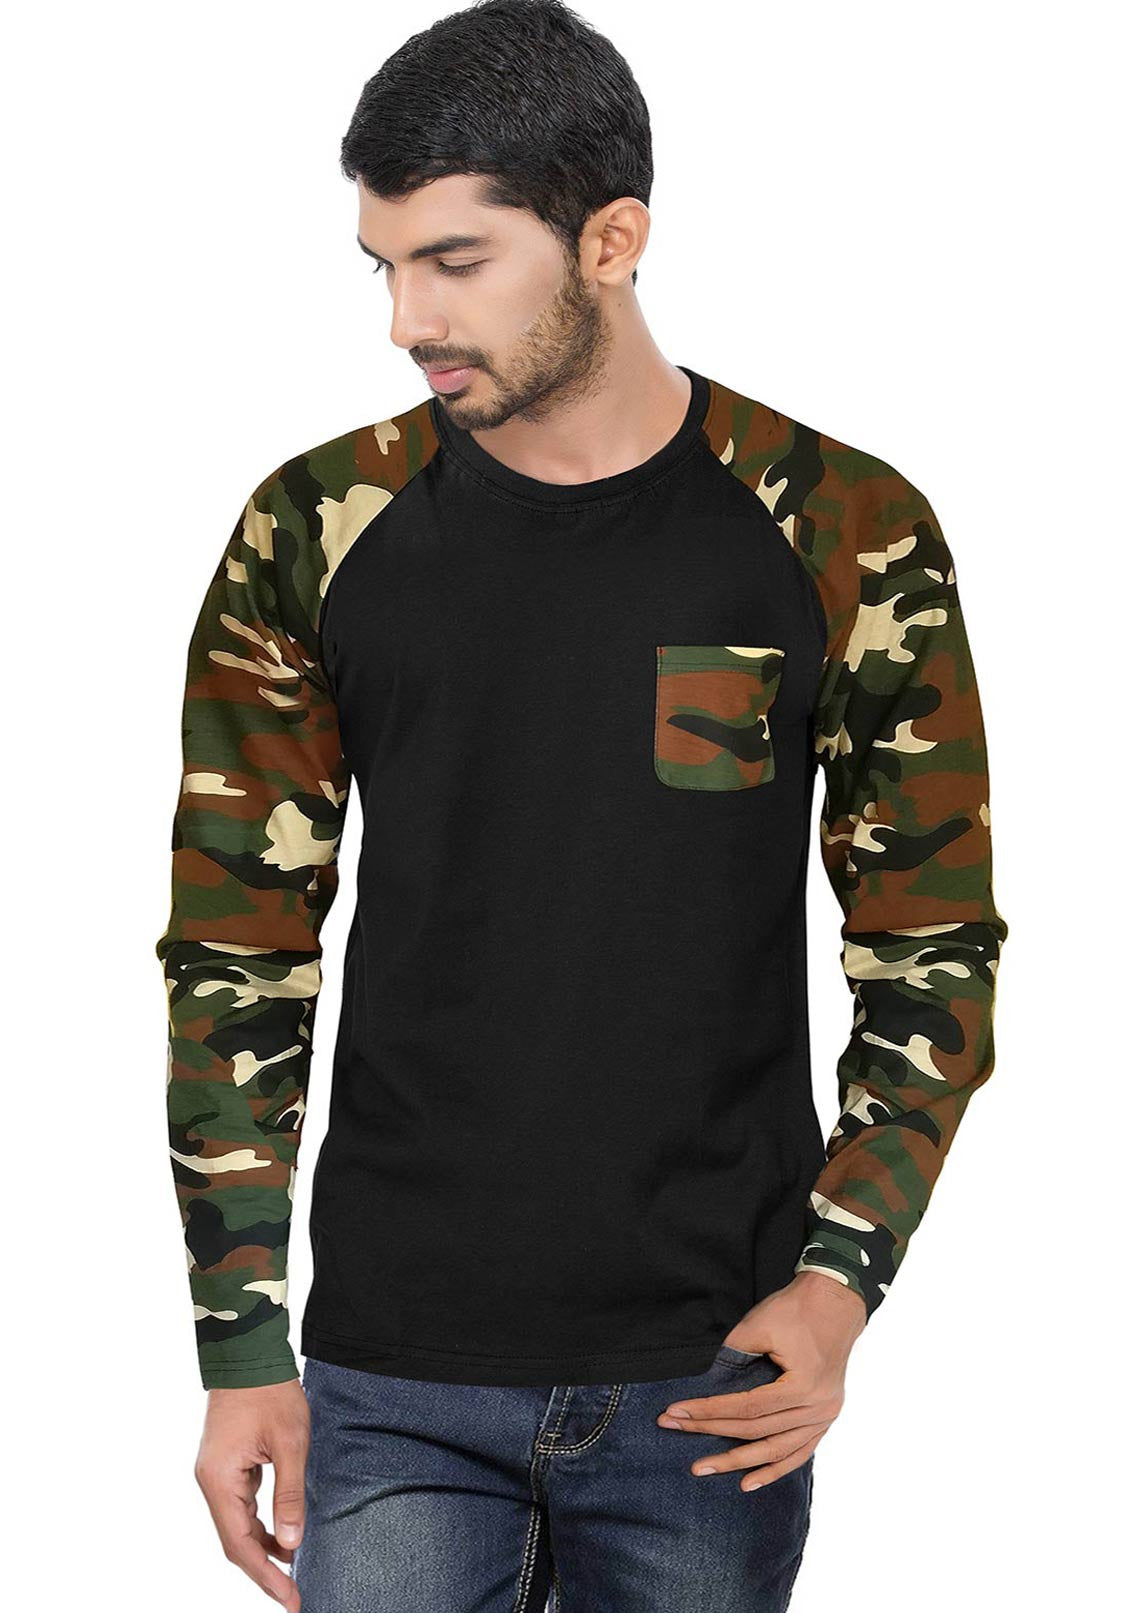 Army camouflage raglan full sleeves t shirt printed camo for Full black t shirt